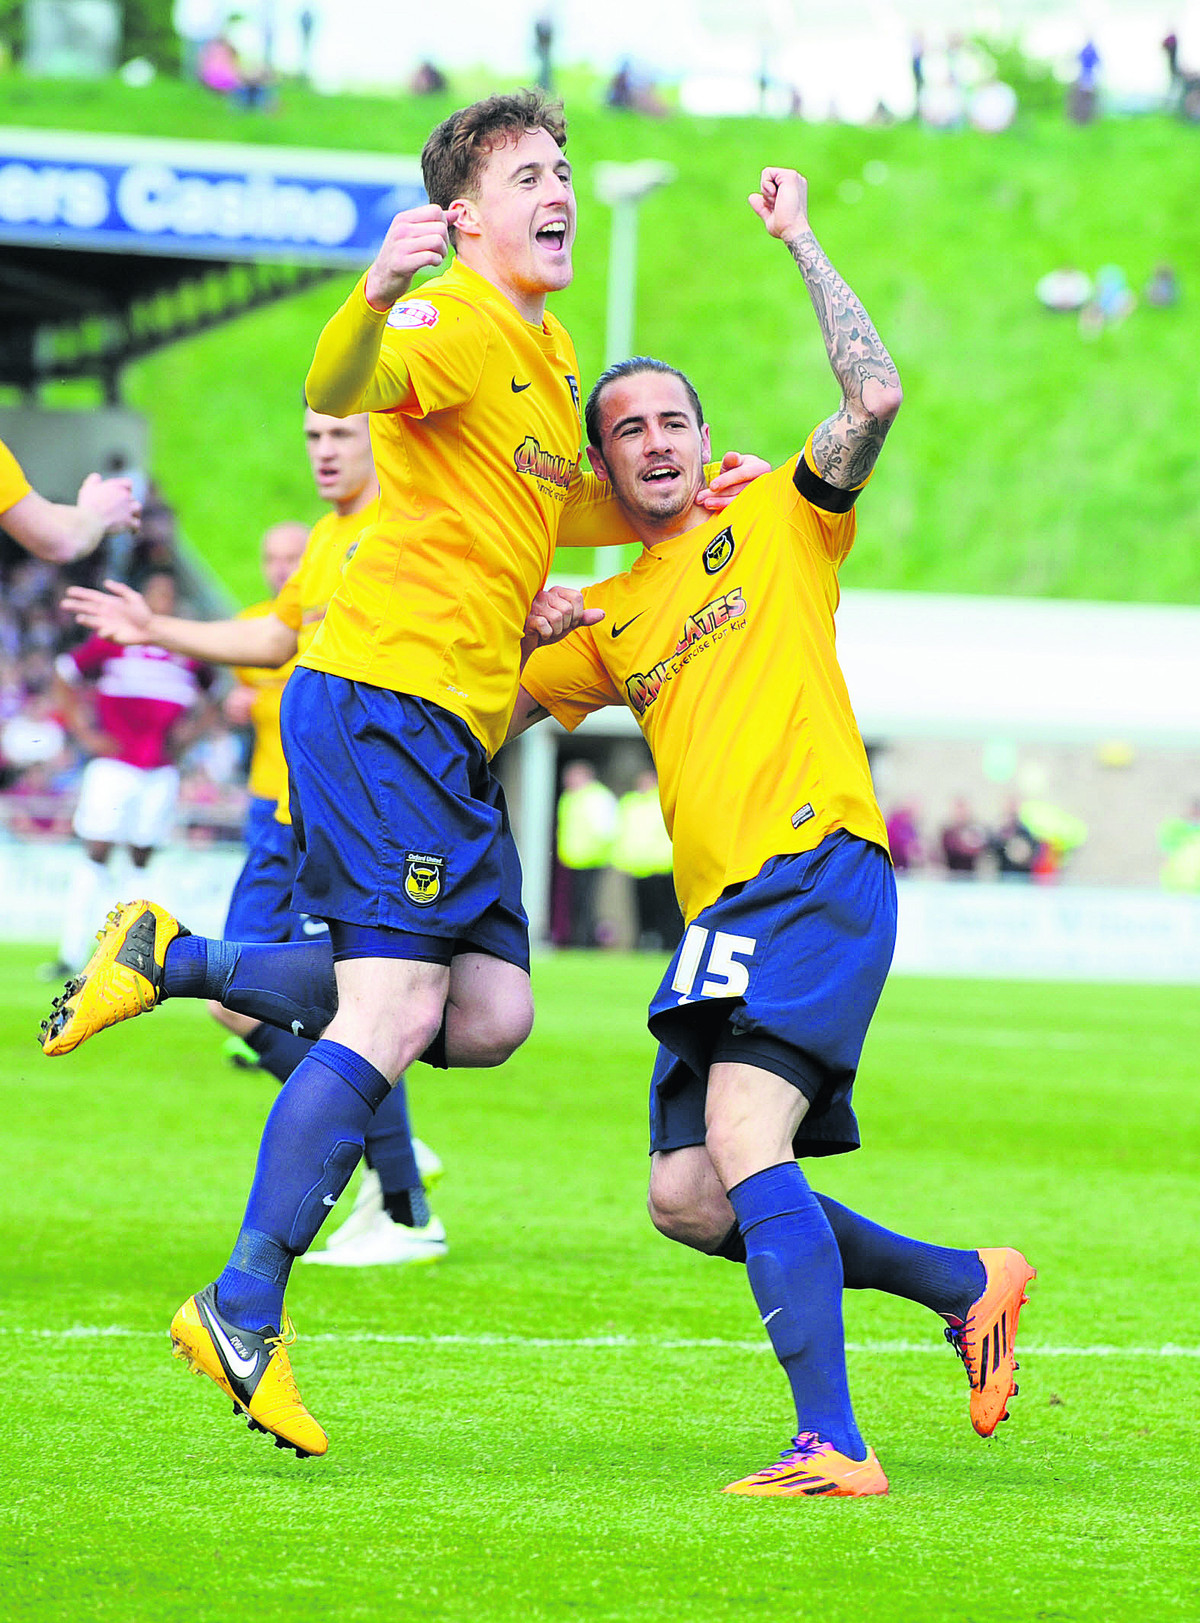 Scott Davies celebrates Ryan Williams's early goal for Oxford, before things went bad for the winger, who was shown a red card for kicking out at Northampton's Ricky Ravenhill